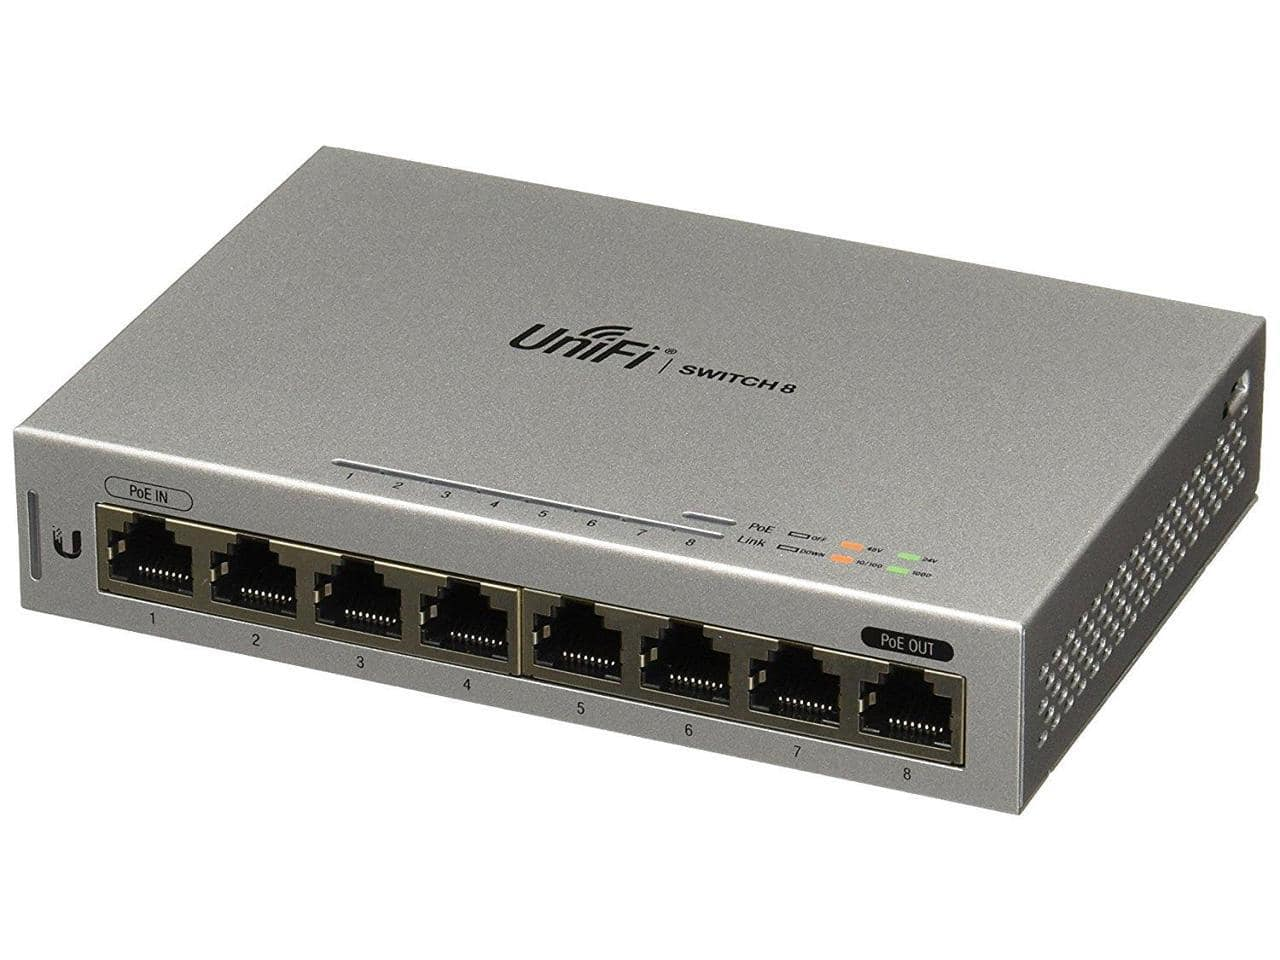 8-Port Ubiquiti UniFi Gigabit Ethernet Managed Switch $79 + Free Shipping via Newegg